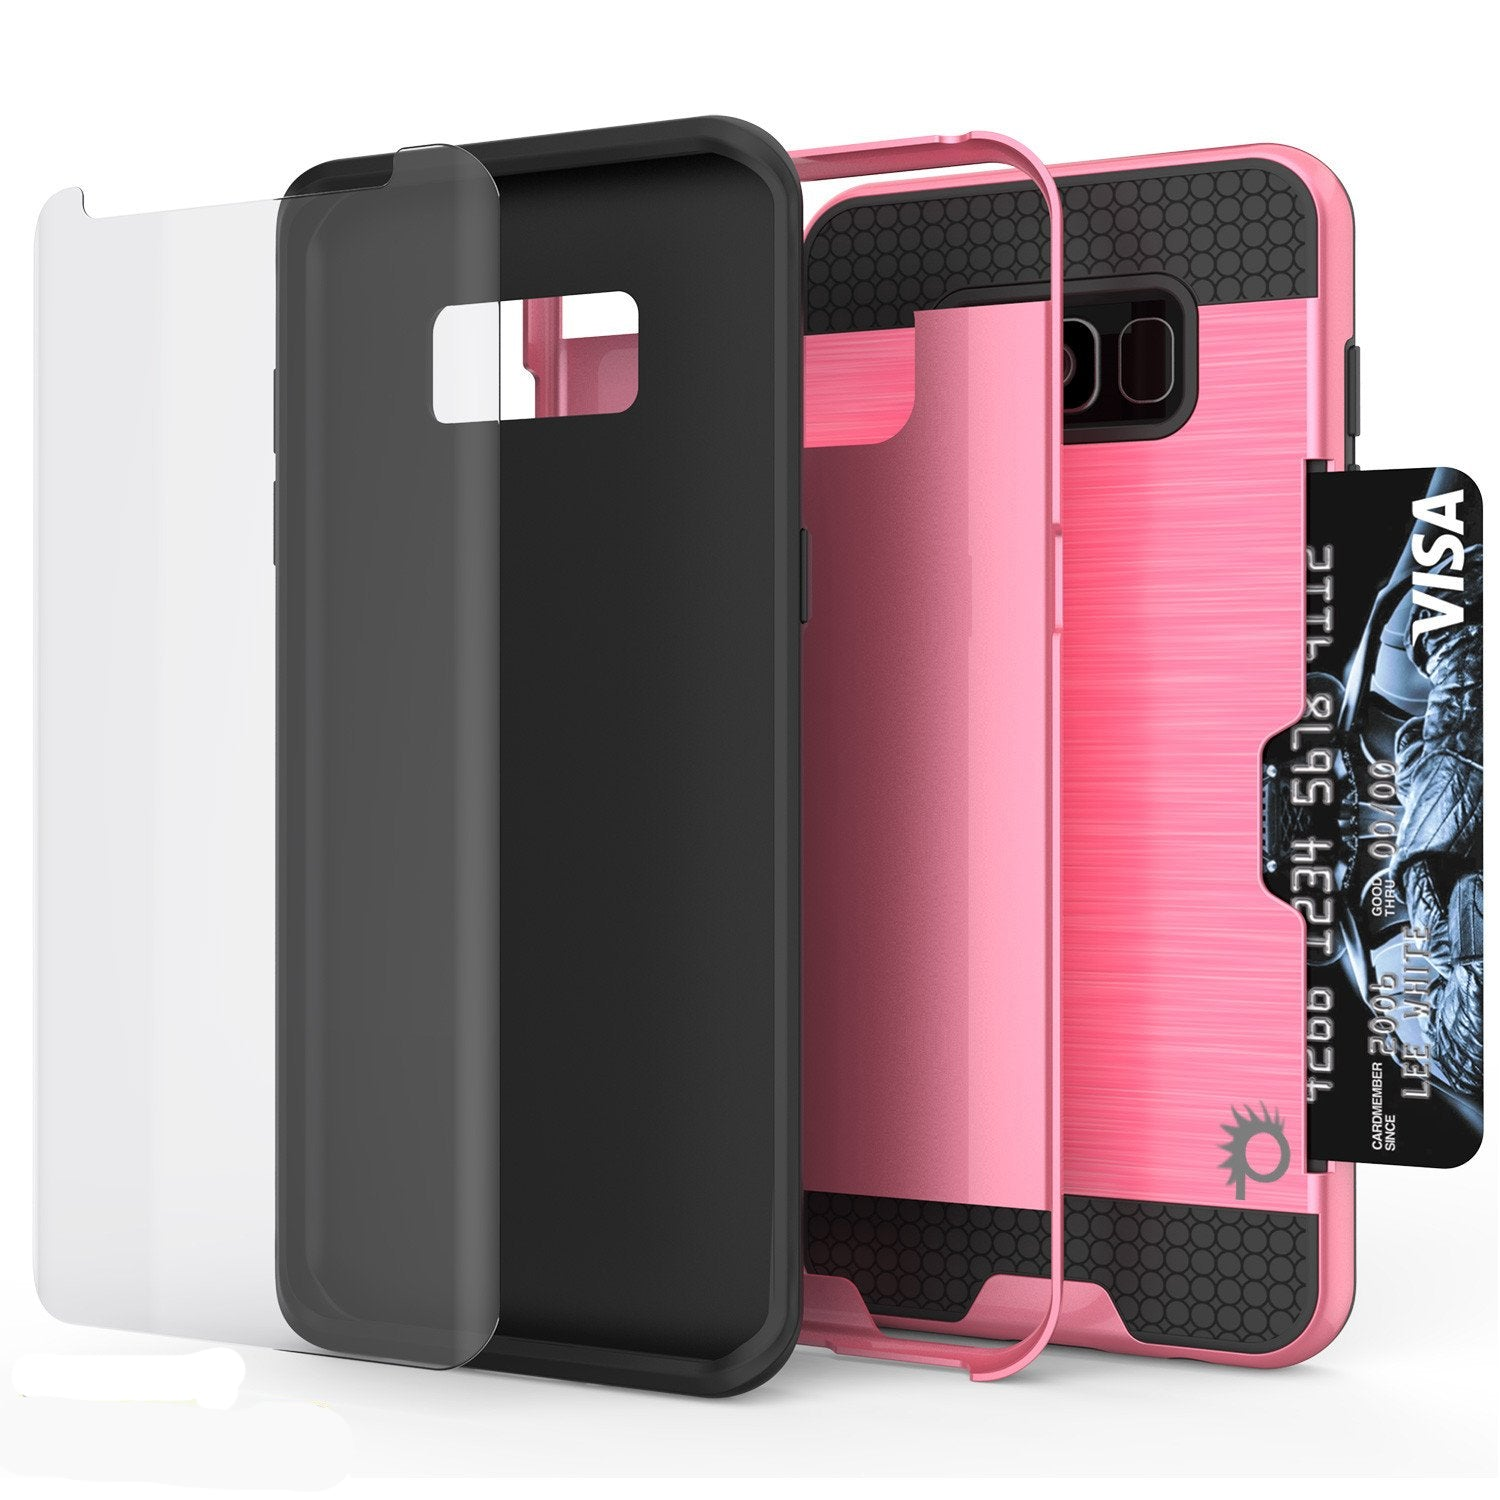 Galaxy S8 Plus Punkcase SLOT Series Dual-Layer Armor Cover, Pink